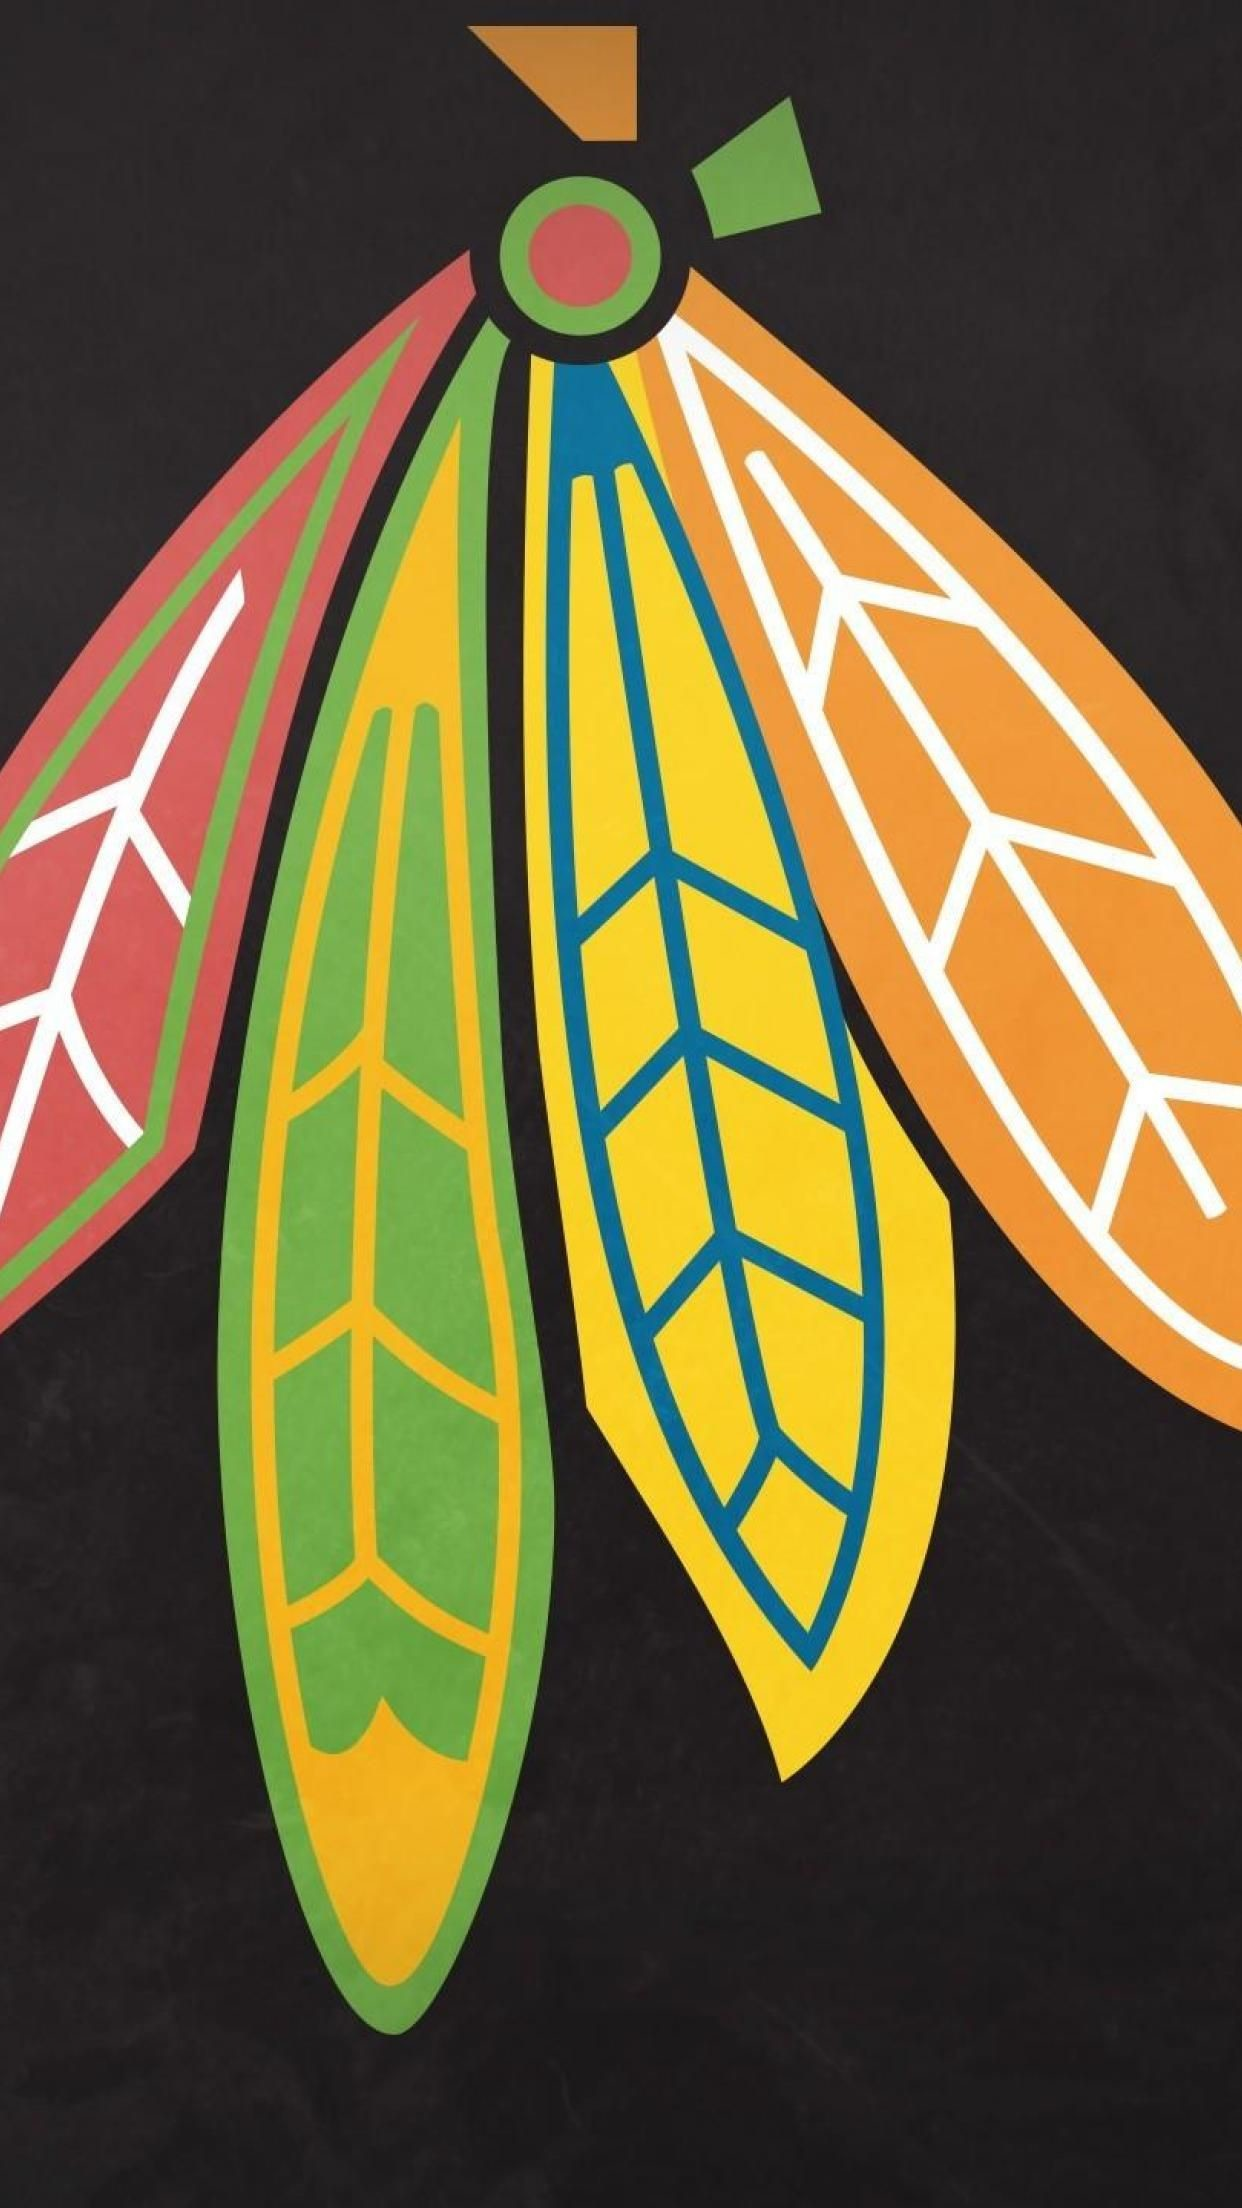 blackhawks iphone wallpaper nhl mascot wallpapers 76 images 3375